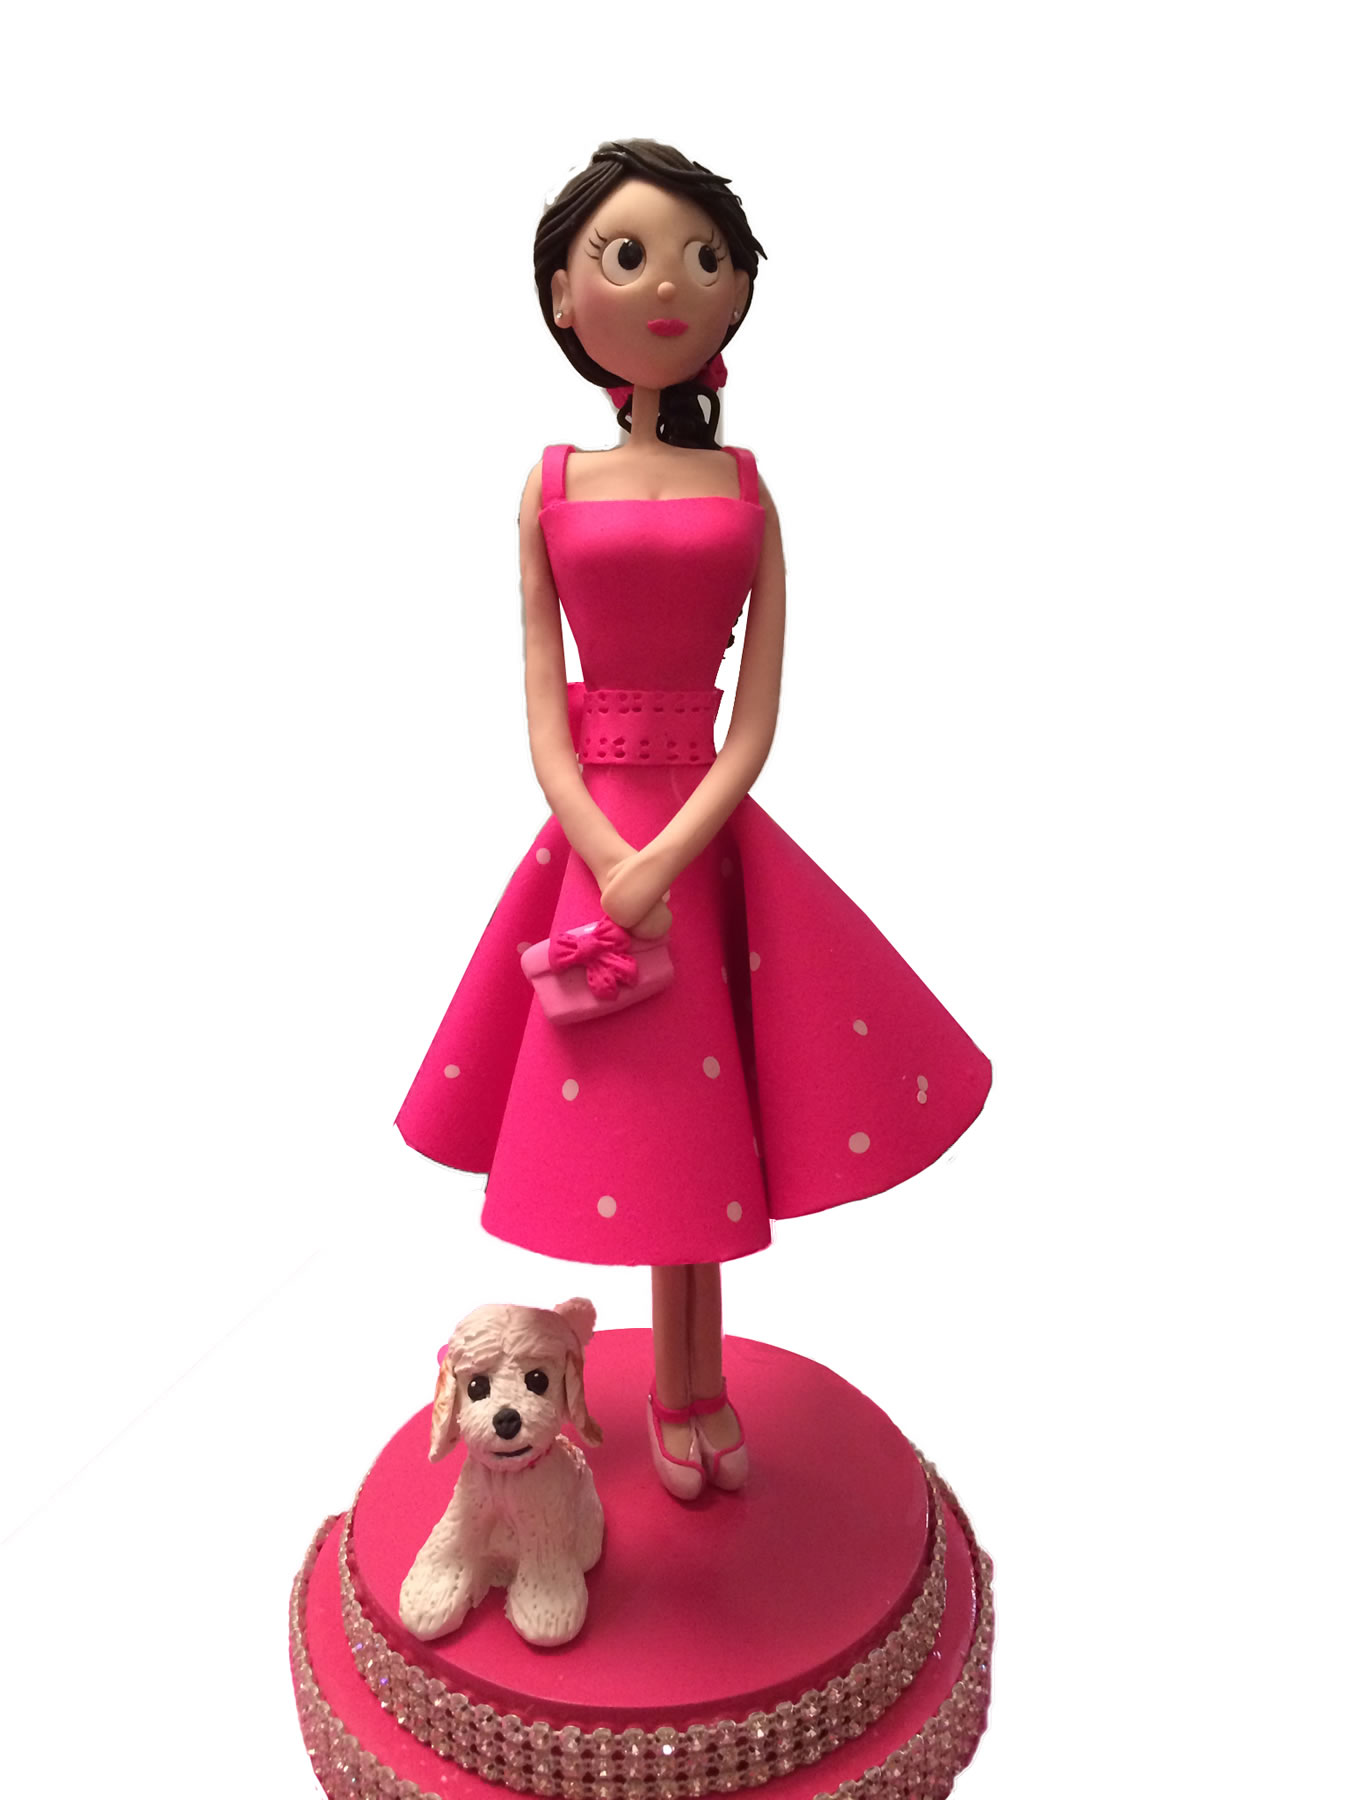 lady_dog_polymer_cake_topper_pink_1800px